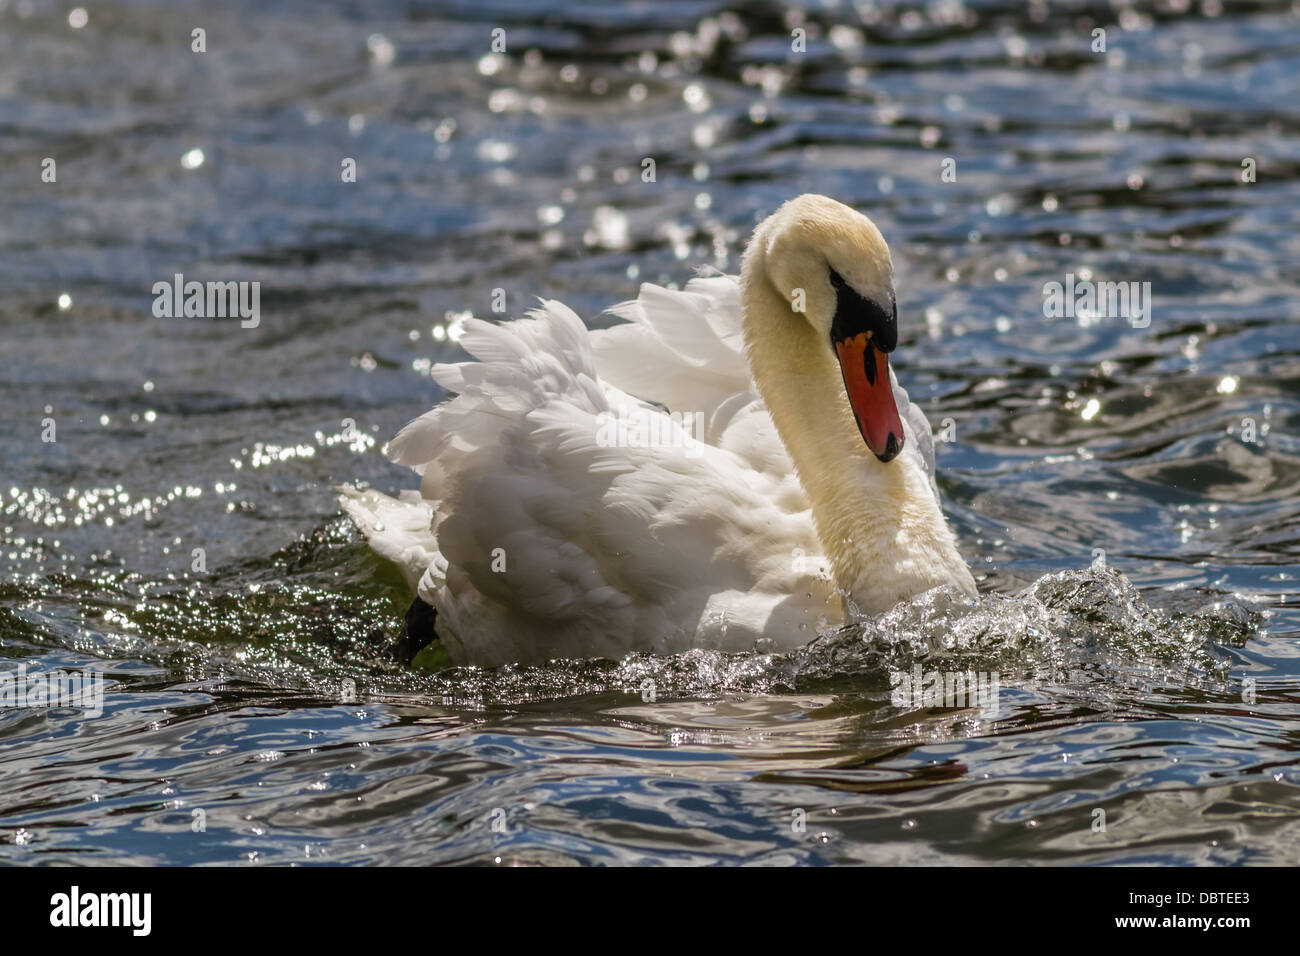 Mute swan in delicate sunlight and sparkling water, Yorkshire, UK - Stock Image